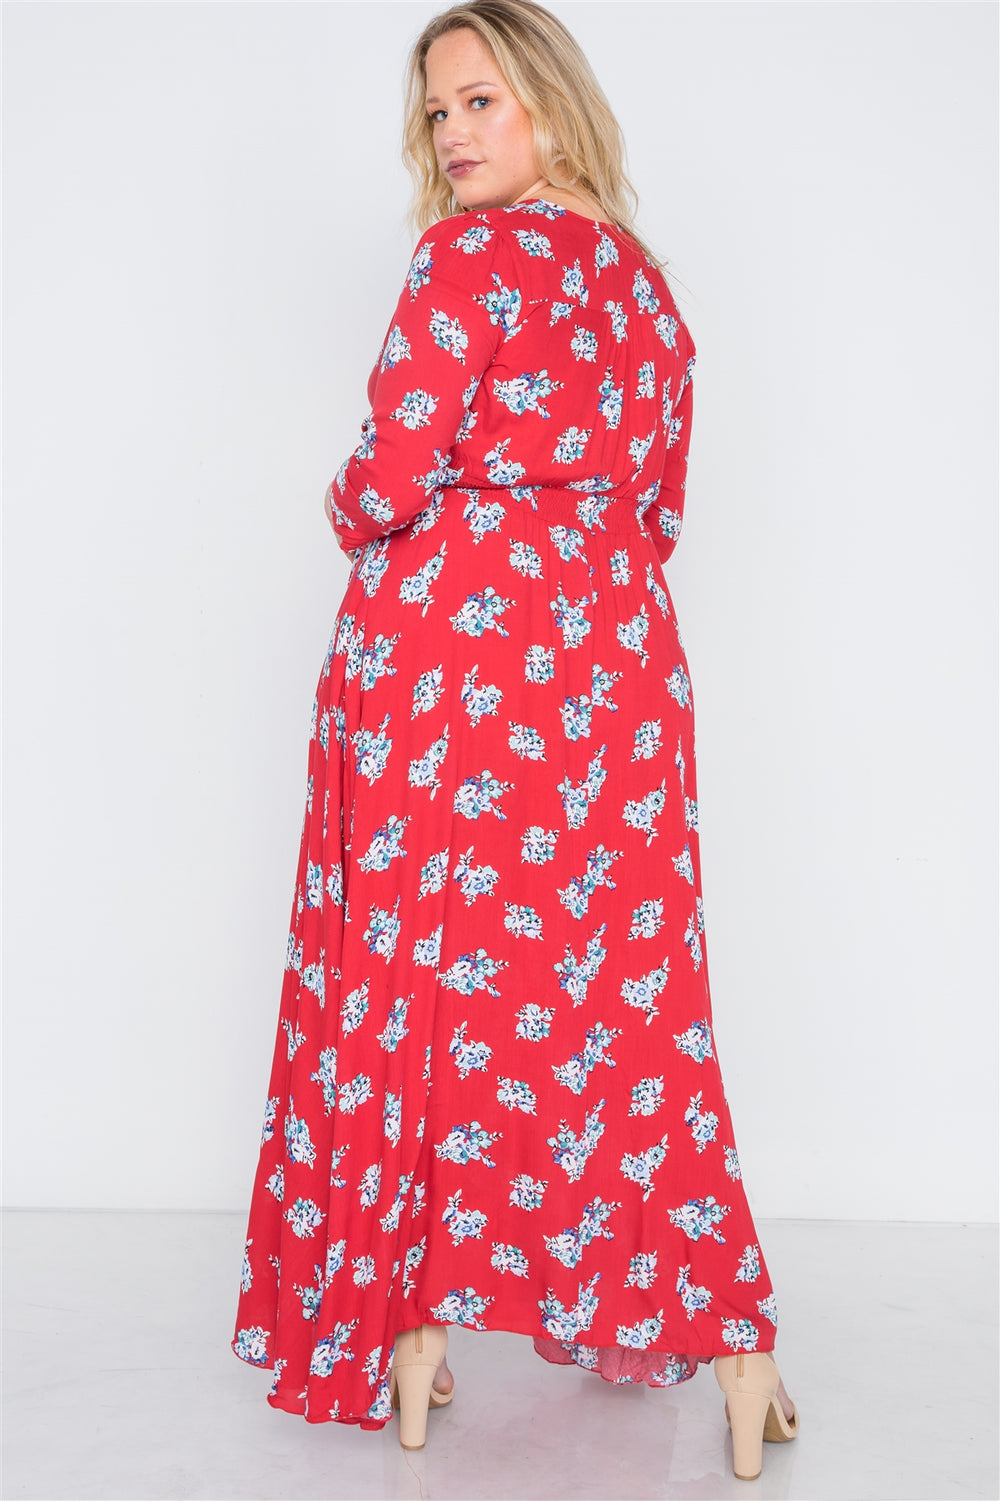 Plus Size Floral ud83cudf3a Summer Maxi Dress With Button-Down Design - Red u2764ufe0f